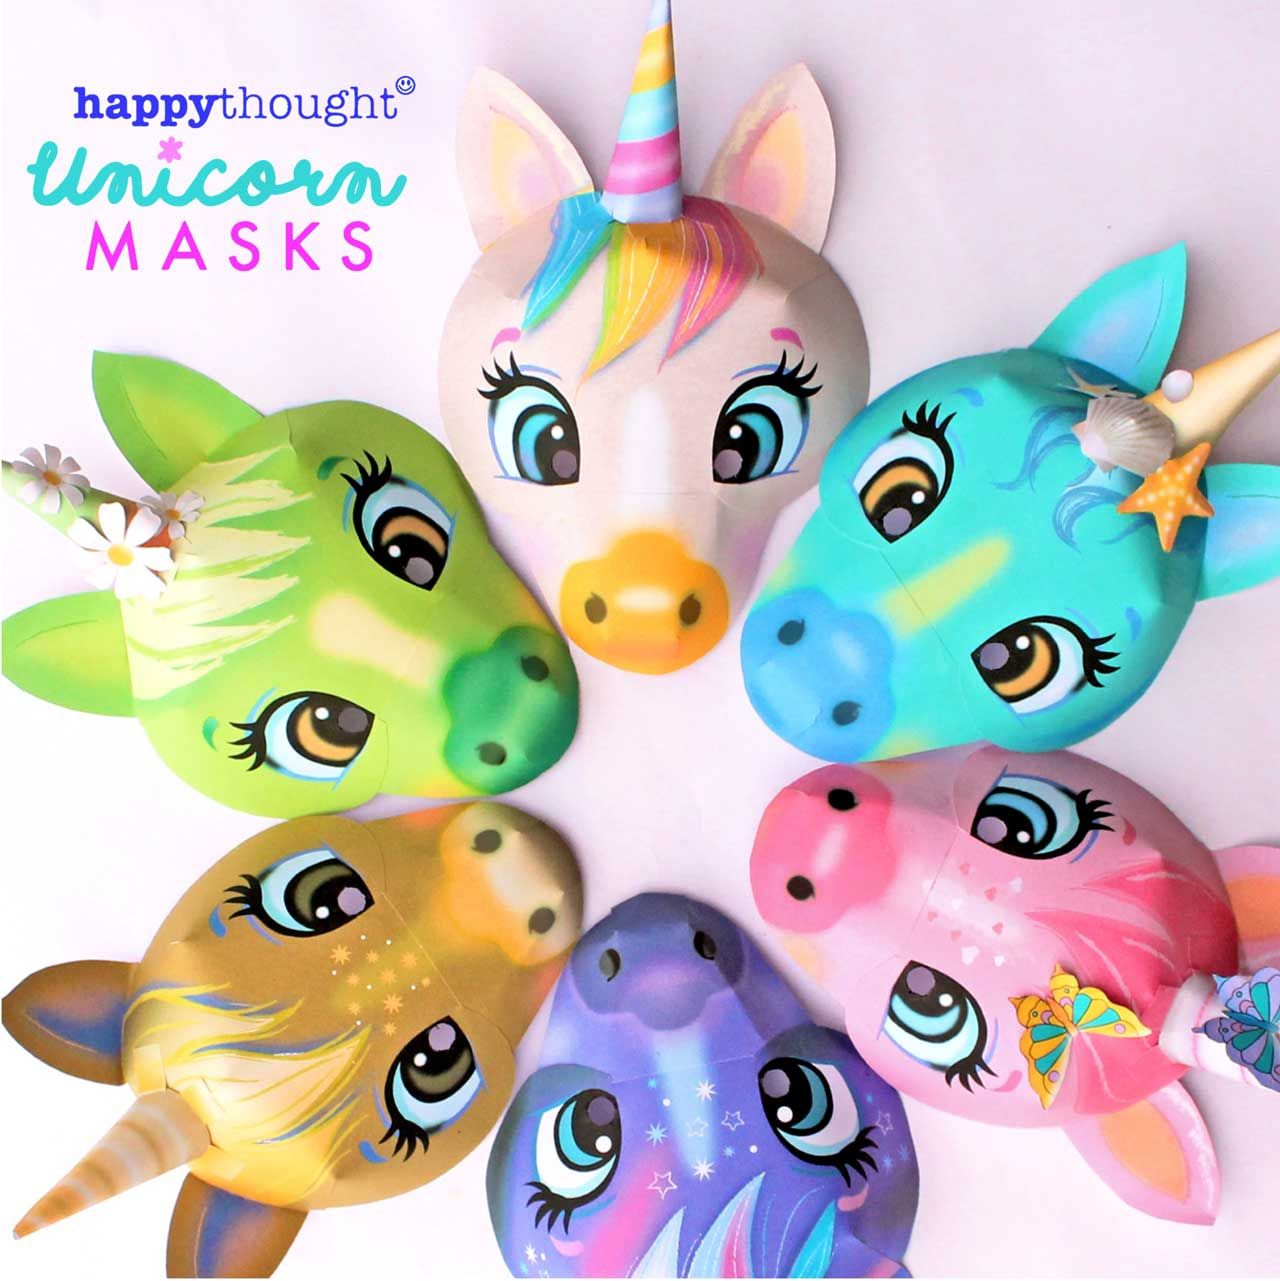 Adorable Quick And Easy Printable Unicorn Masks To